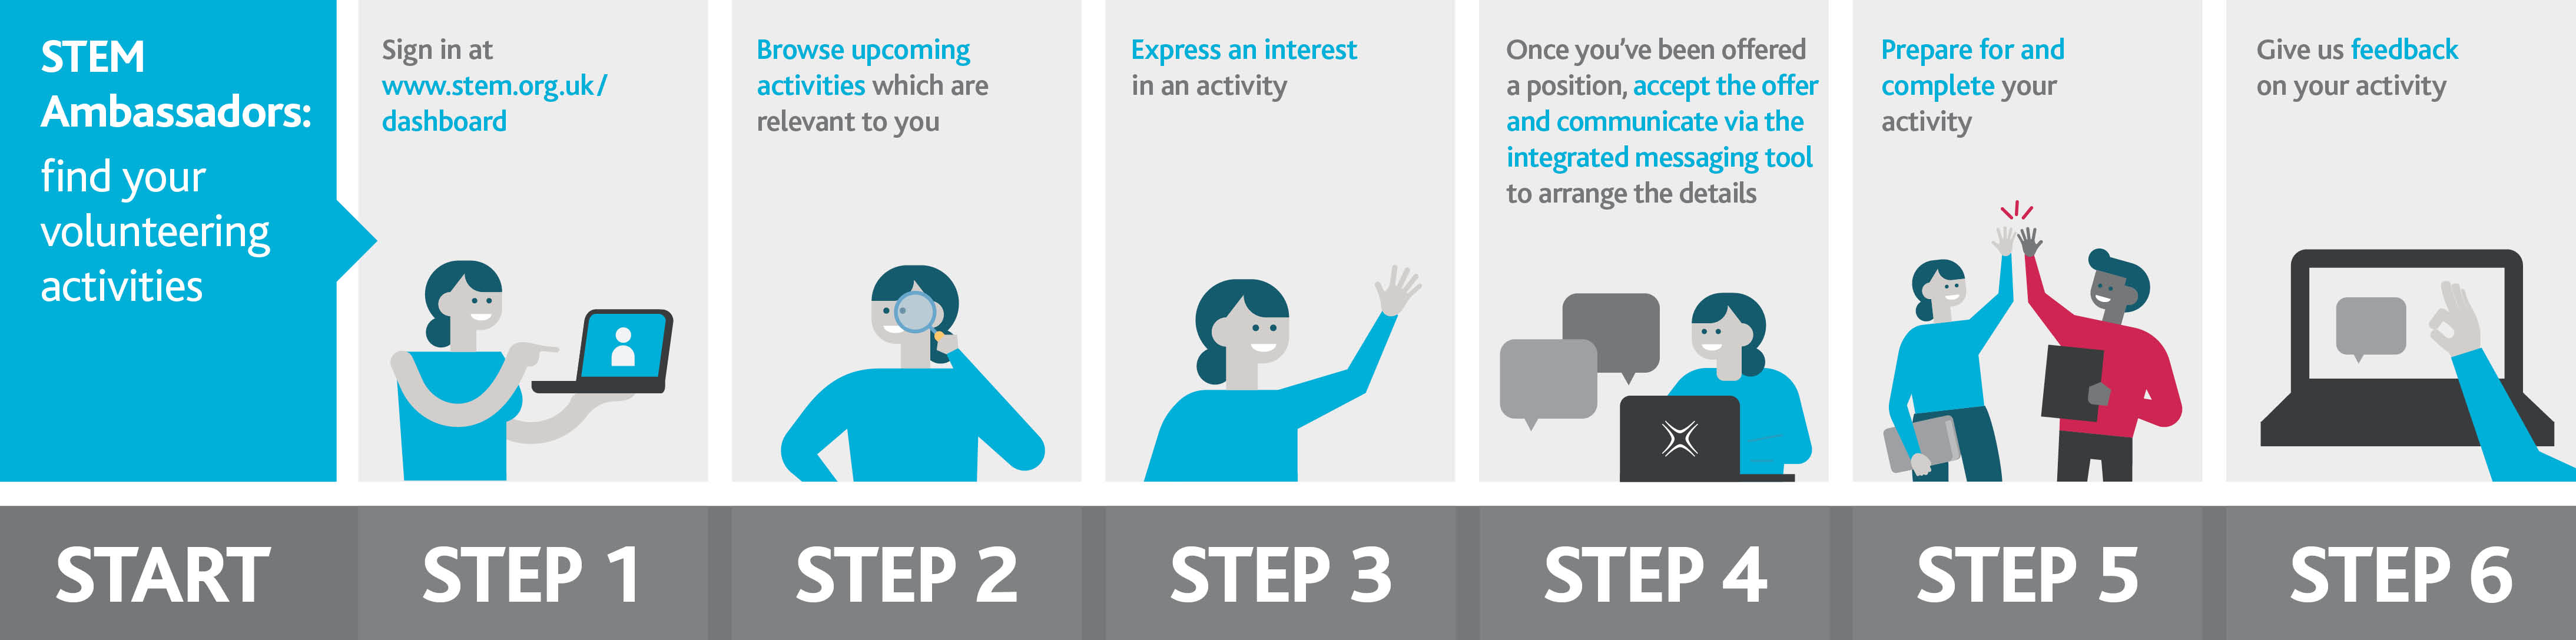 Step by step process to finding volunteering activities